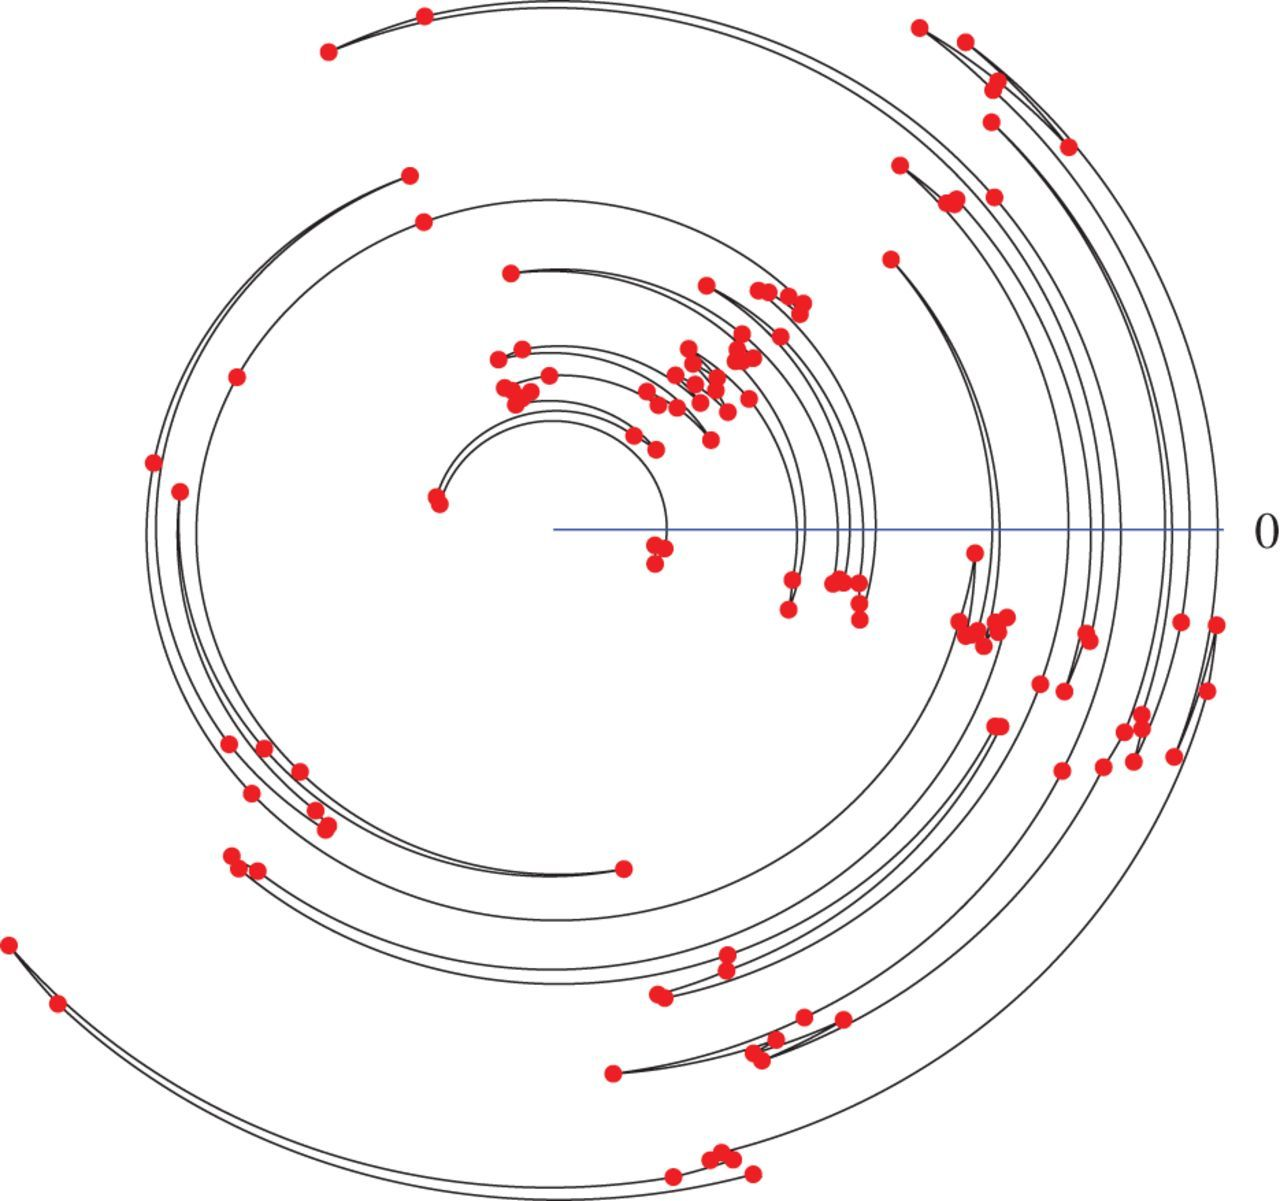 A drifting Markov process on the circle, with physical